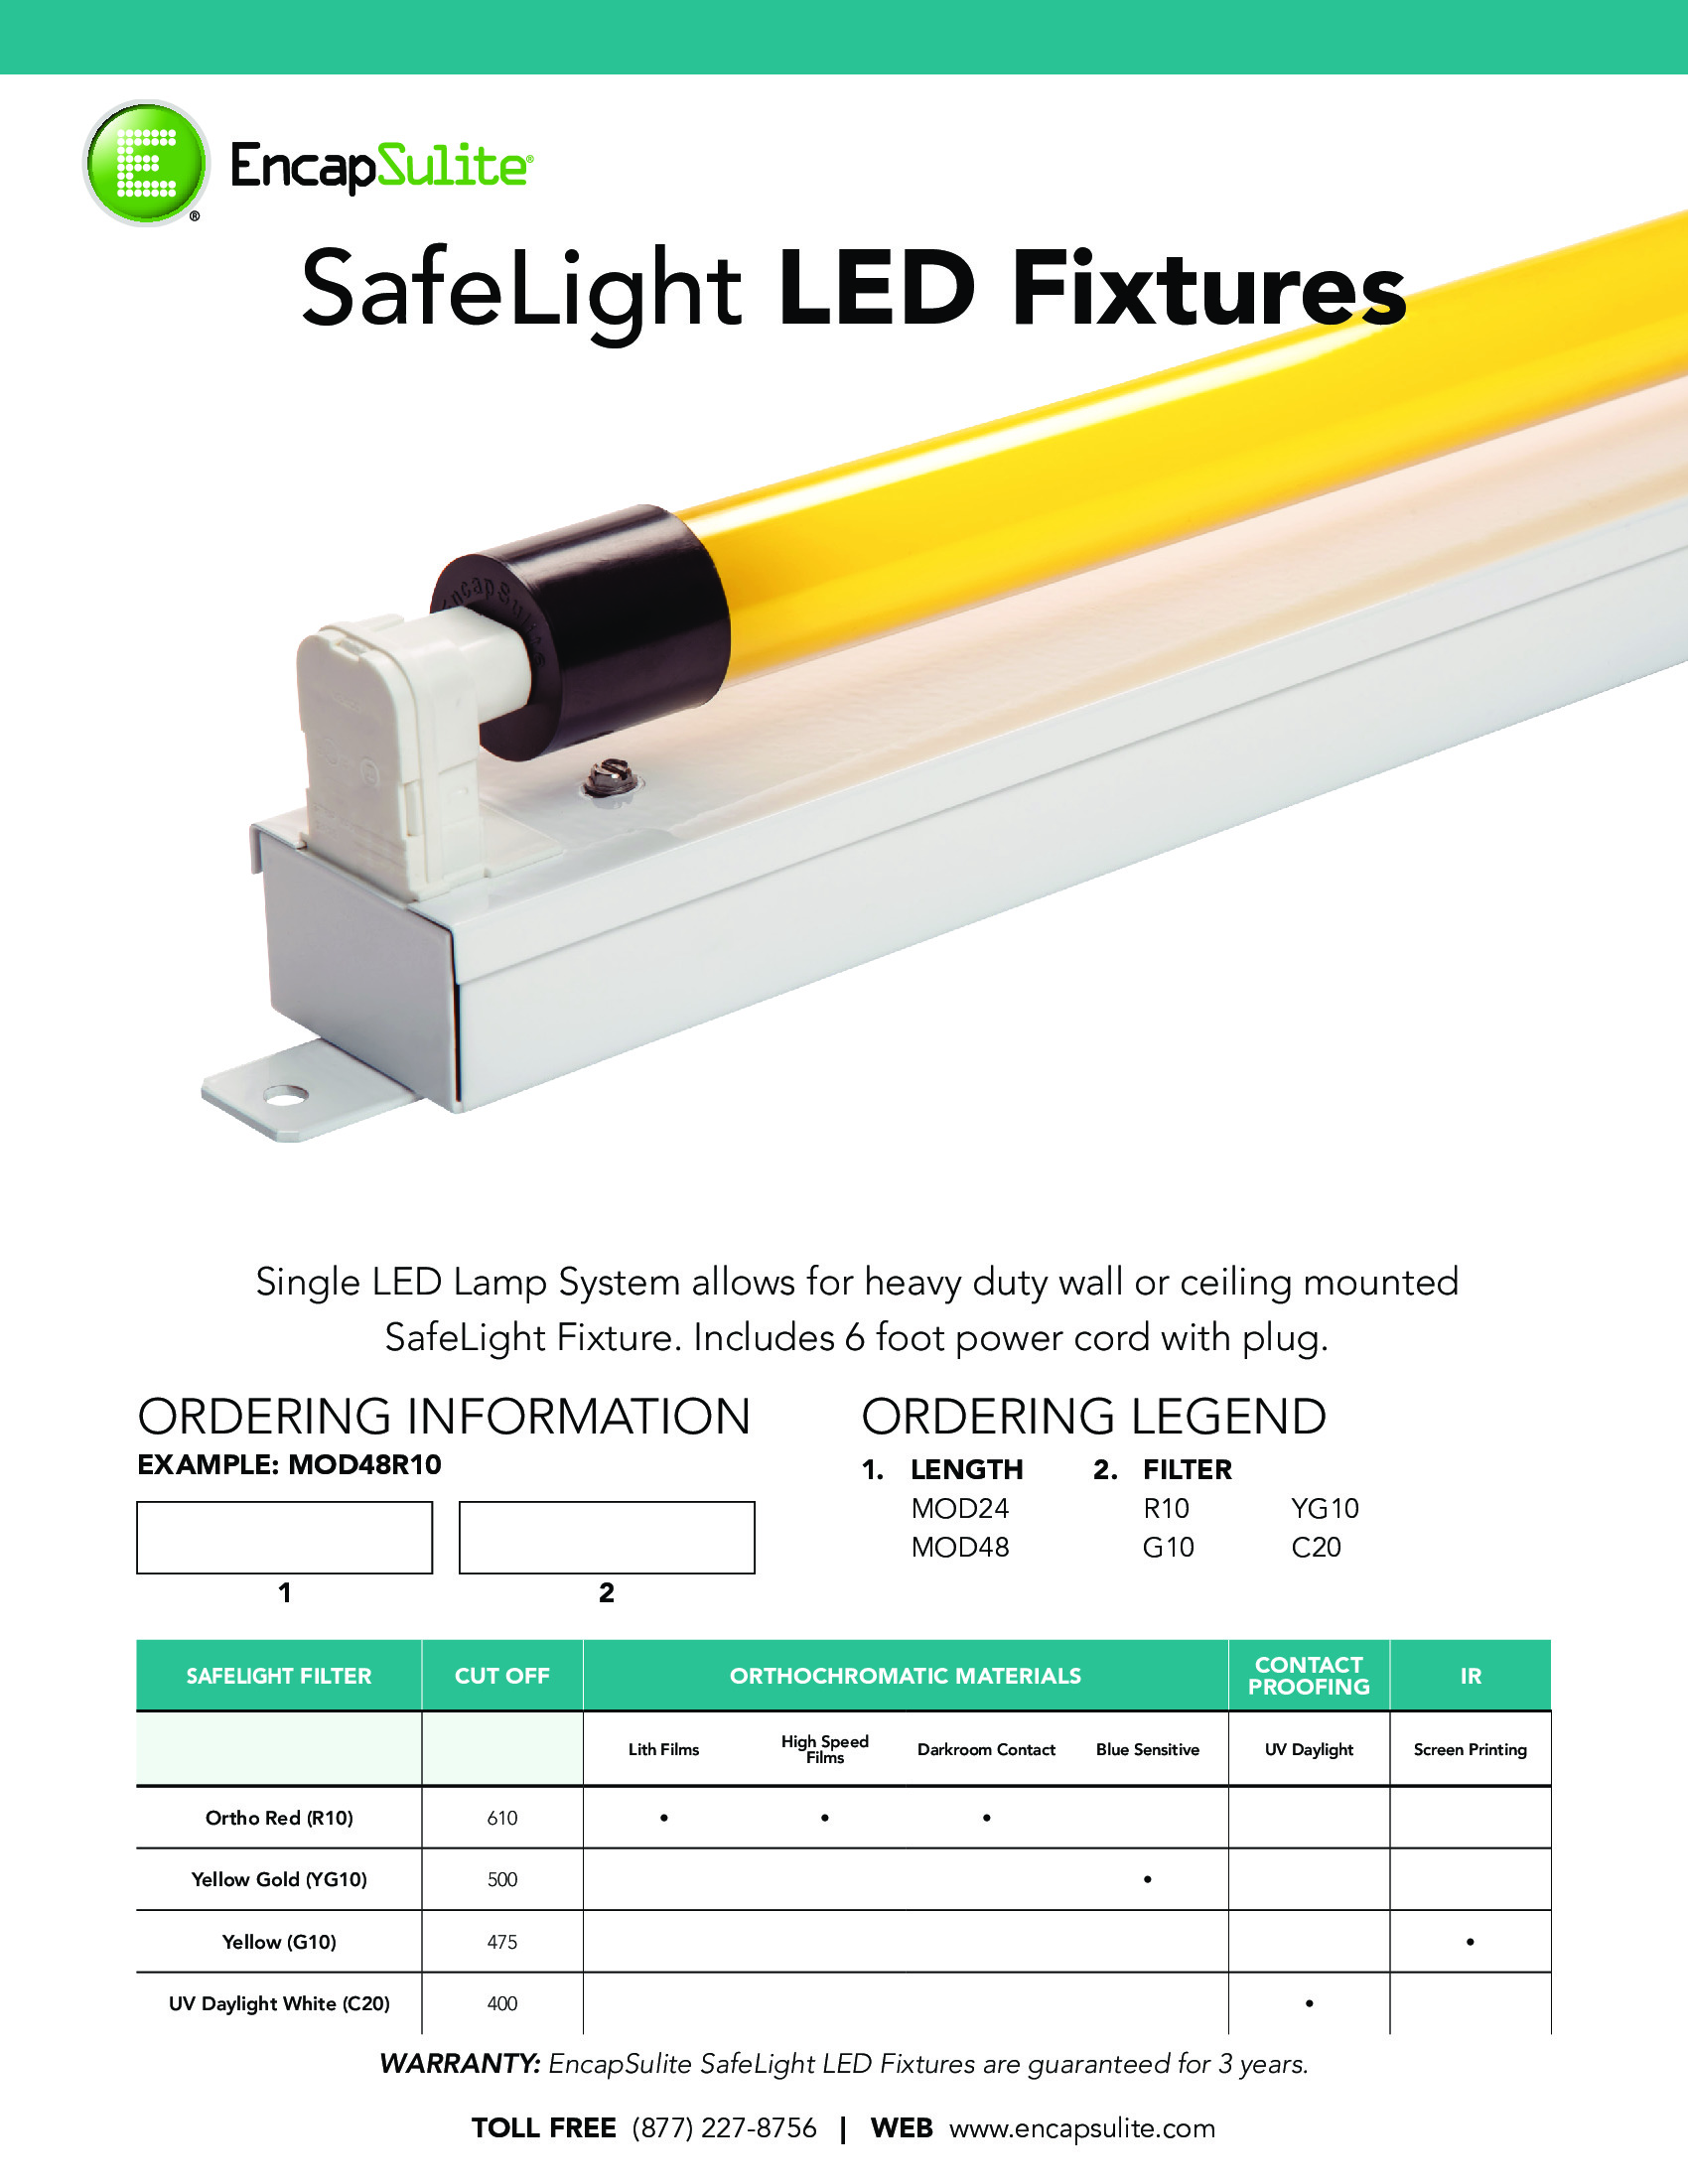 SafeLight LED Fixture Specification